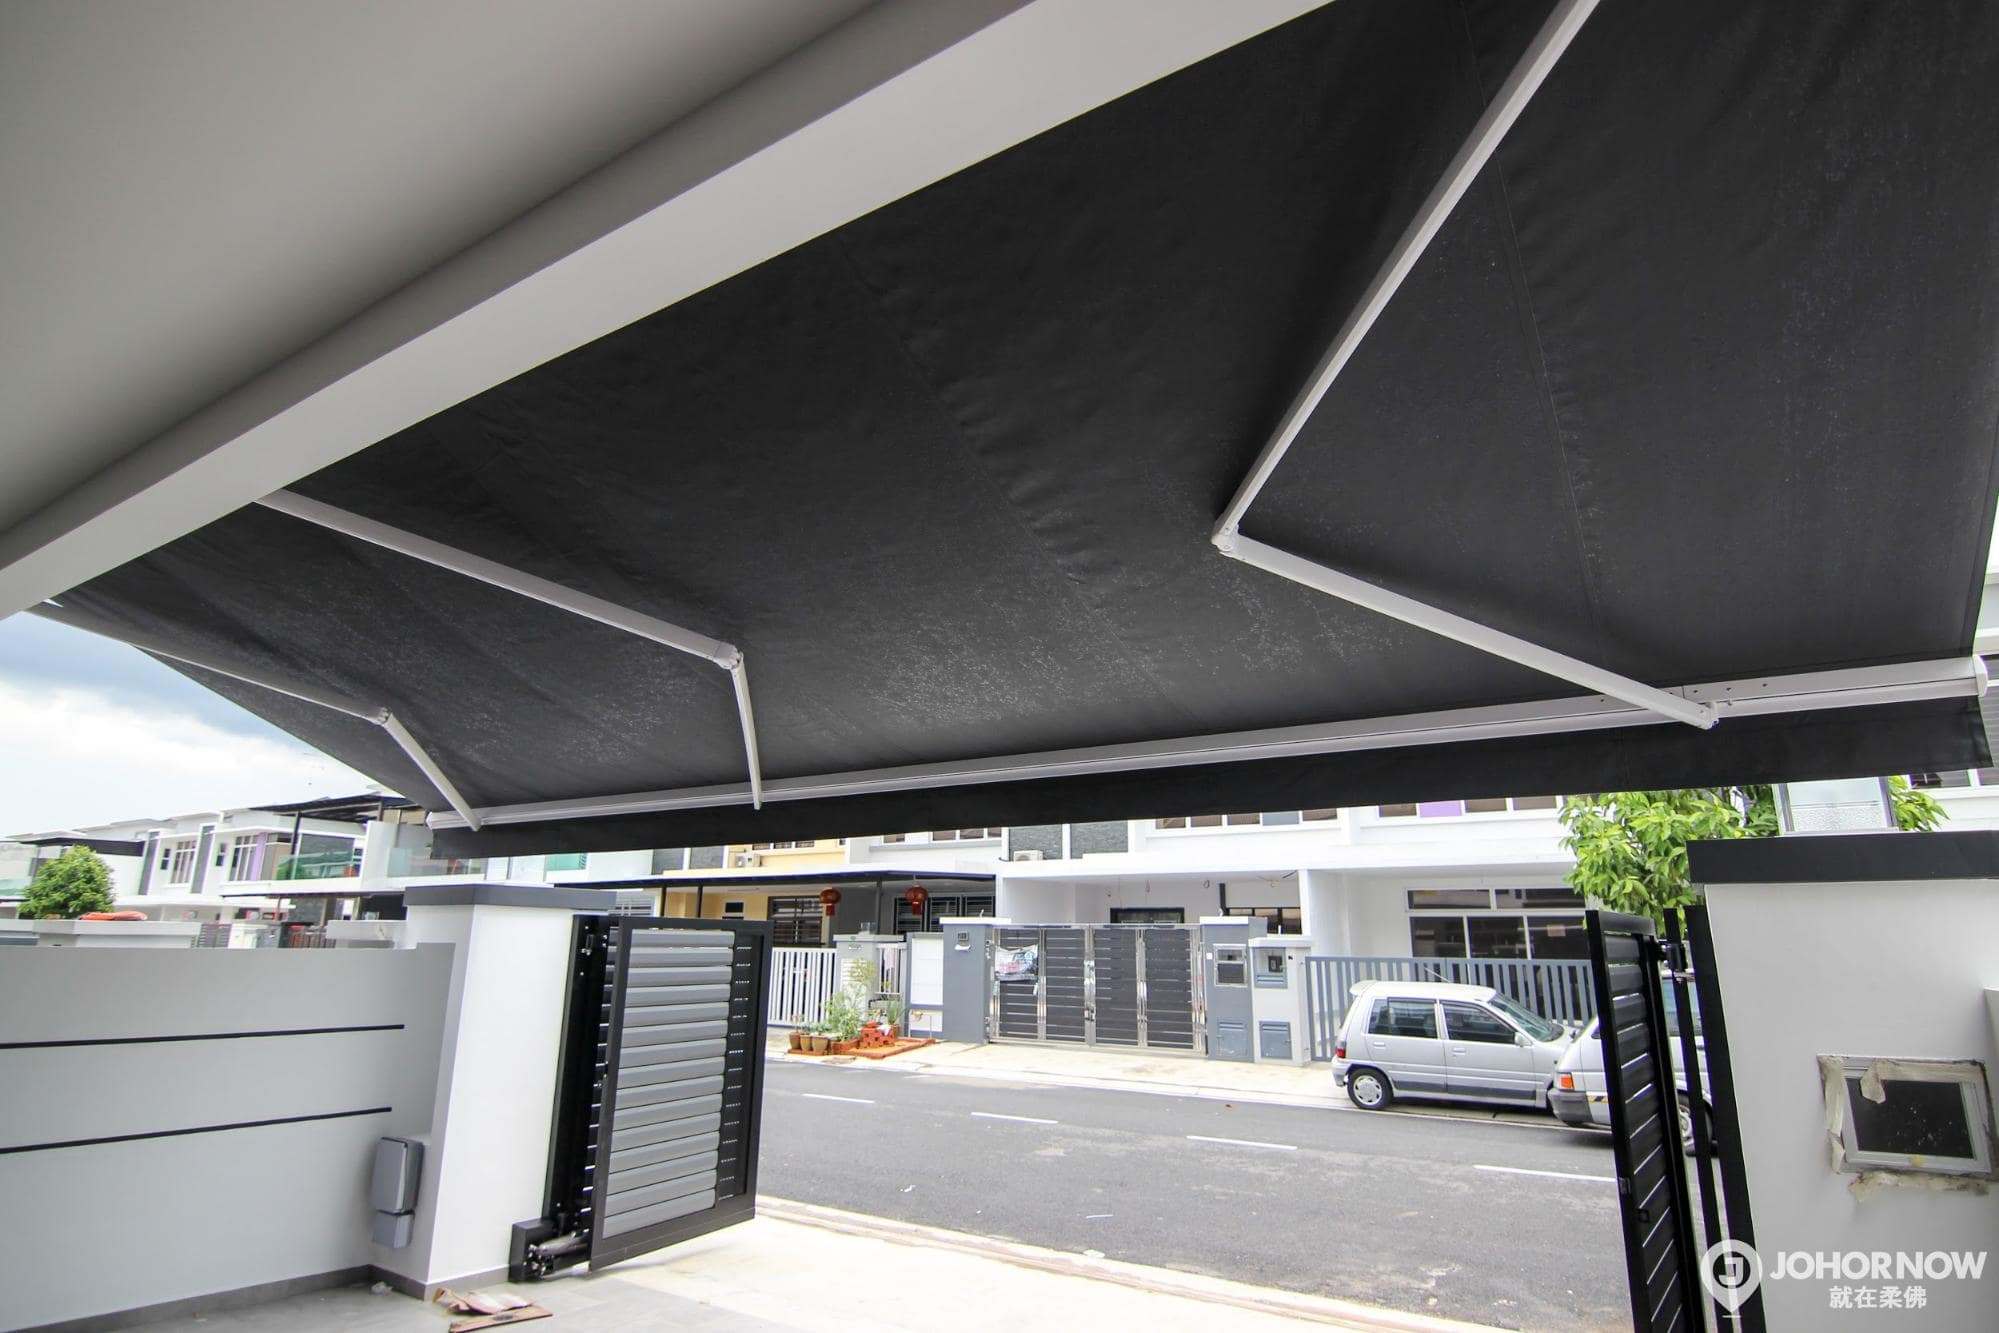 SYT Canvas: Home of Leading Premium Motorized Retractable Sunshades